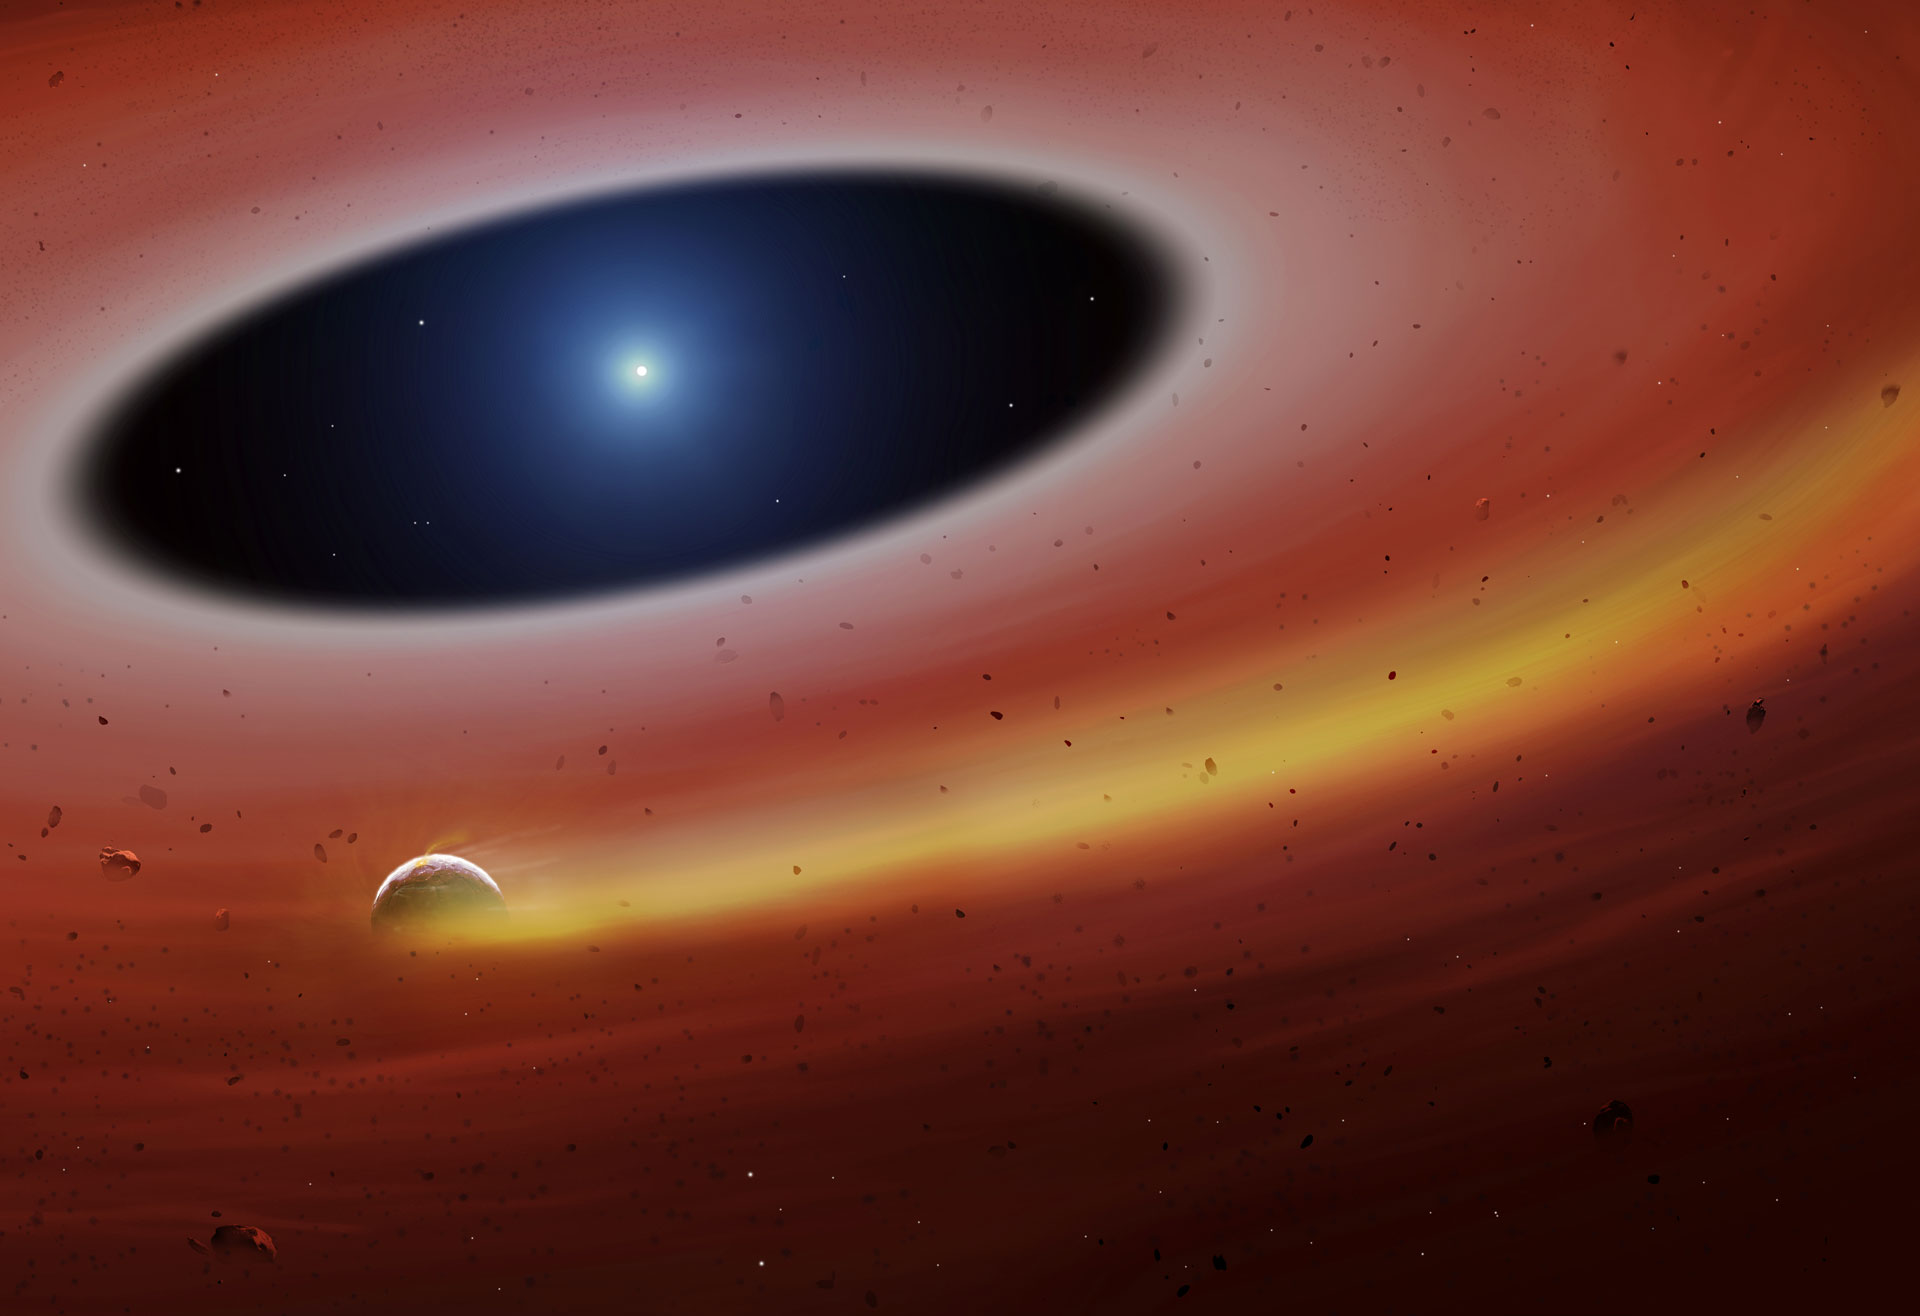 Distant destroyed planet offers terrifying glimpse into planet's future — Earth APOCALYPSE